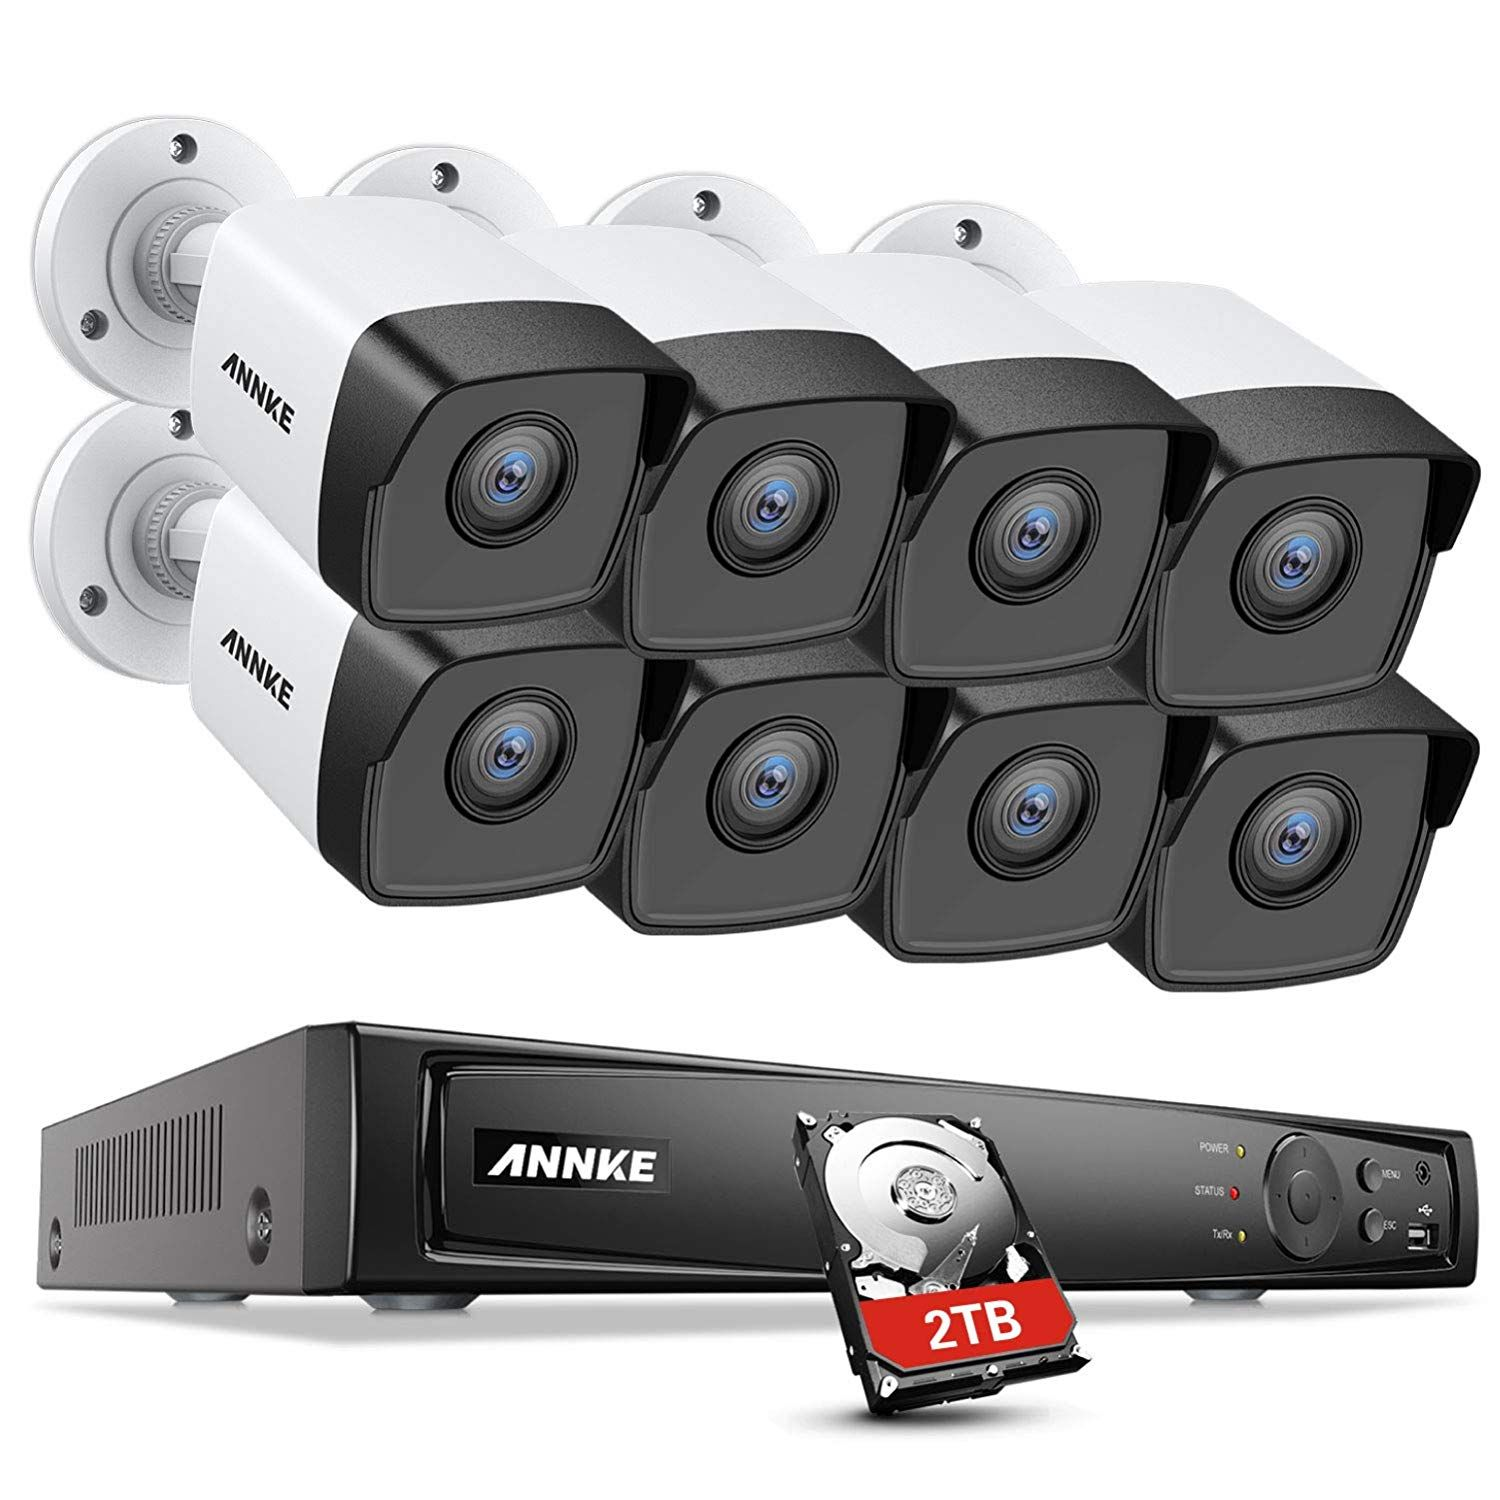 Annke 5MP PoE Security Camera System: Inimitable Performance